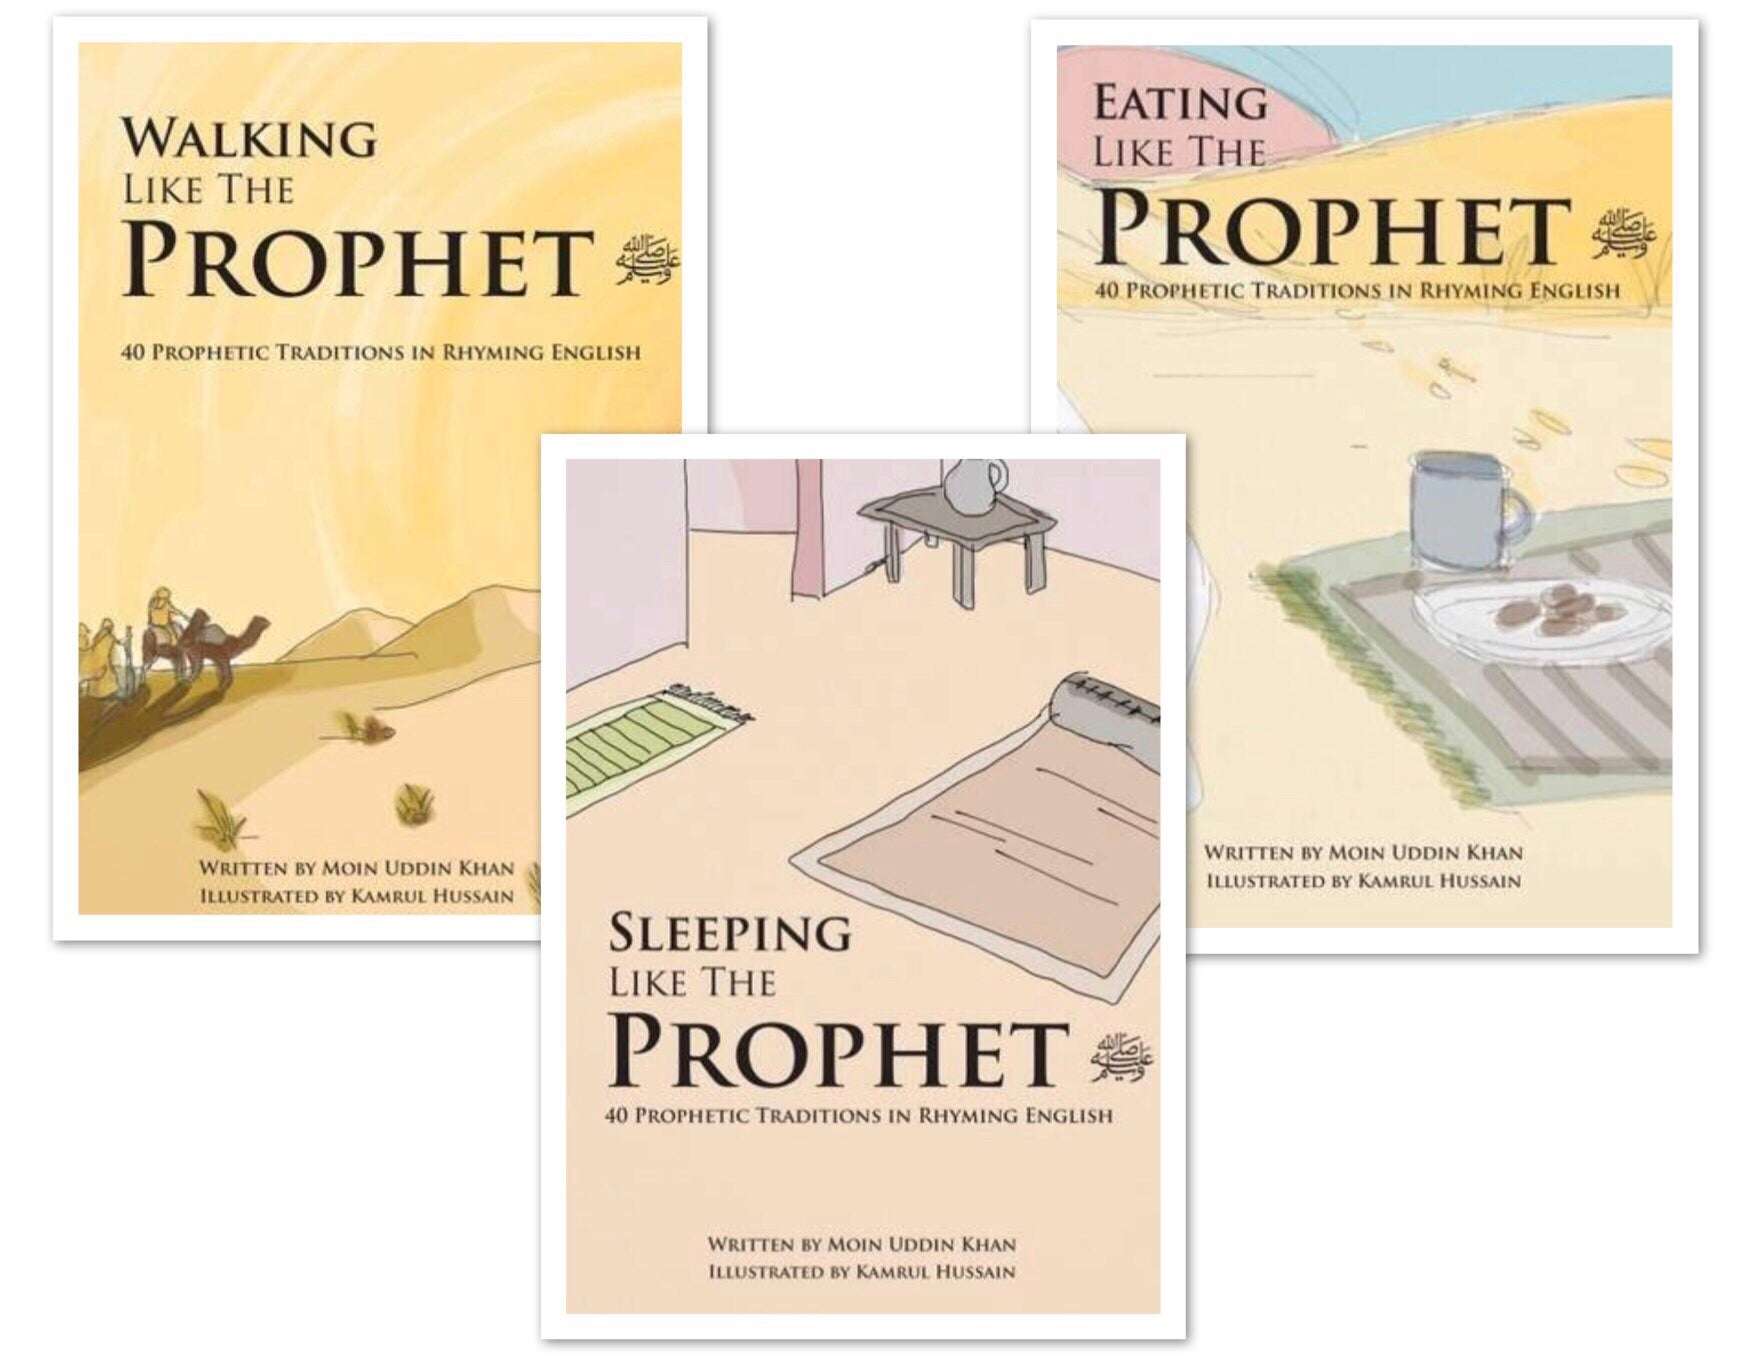 Like the Prophet: 40 Prophetic Traditions in Poetic English (Series of 3)-Islamic Books-Al Rawda Press-Crescent Moon Store